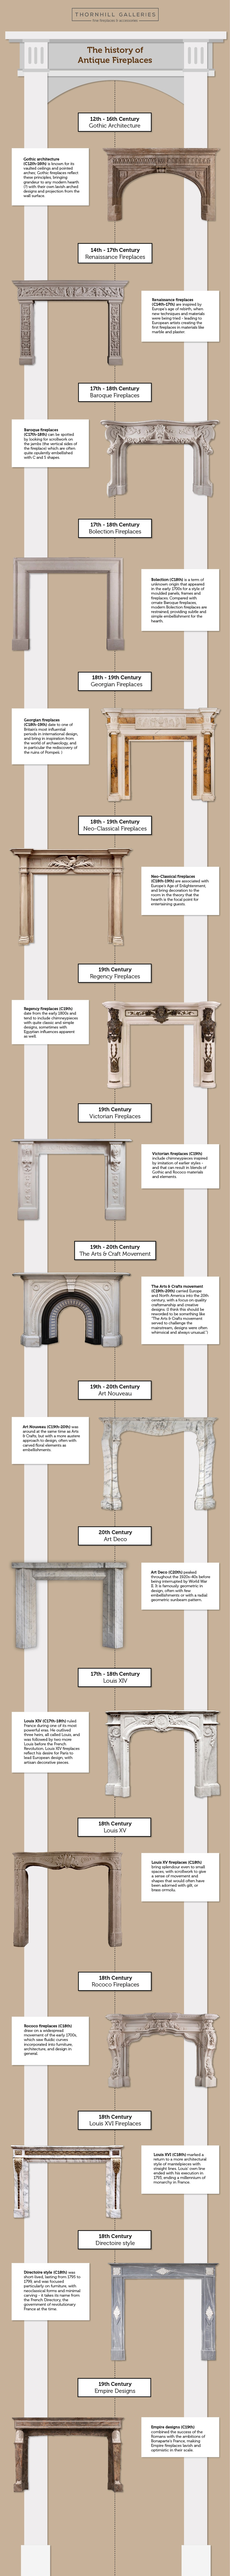 The History of Antique Fireplaces Infographic